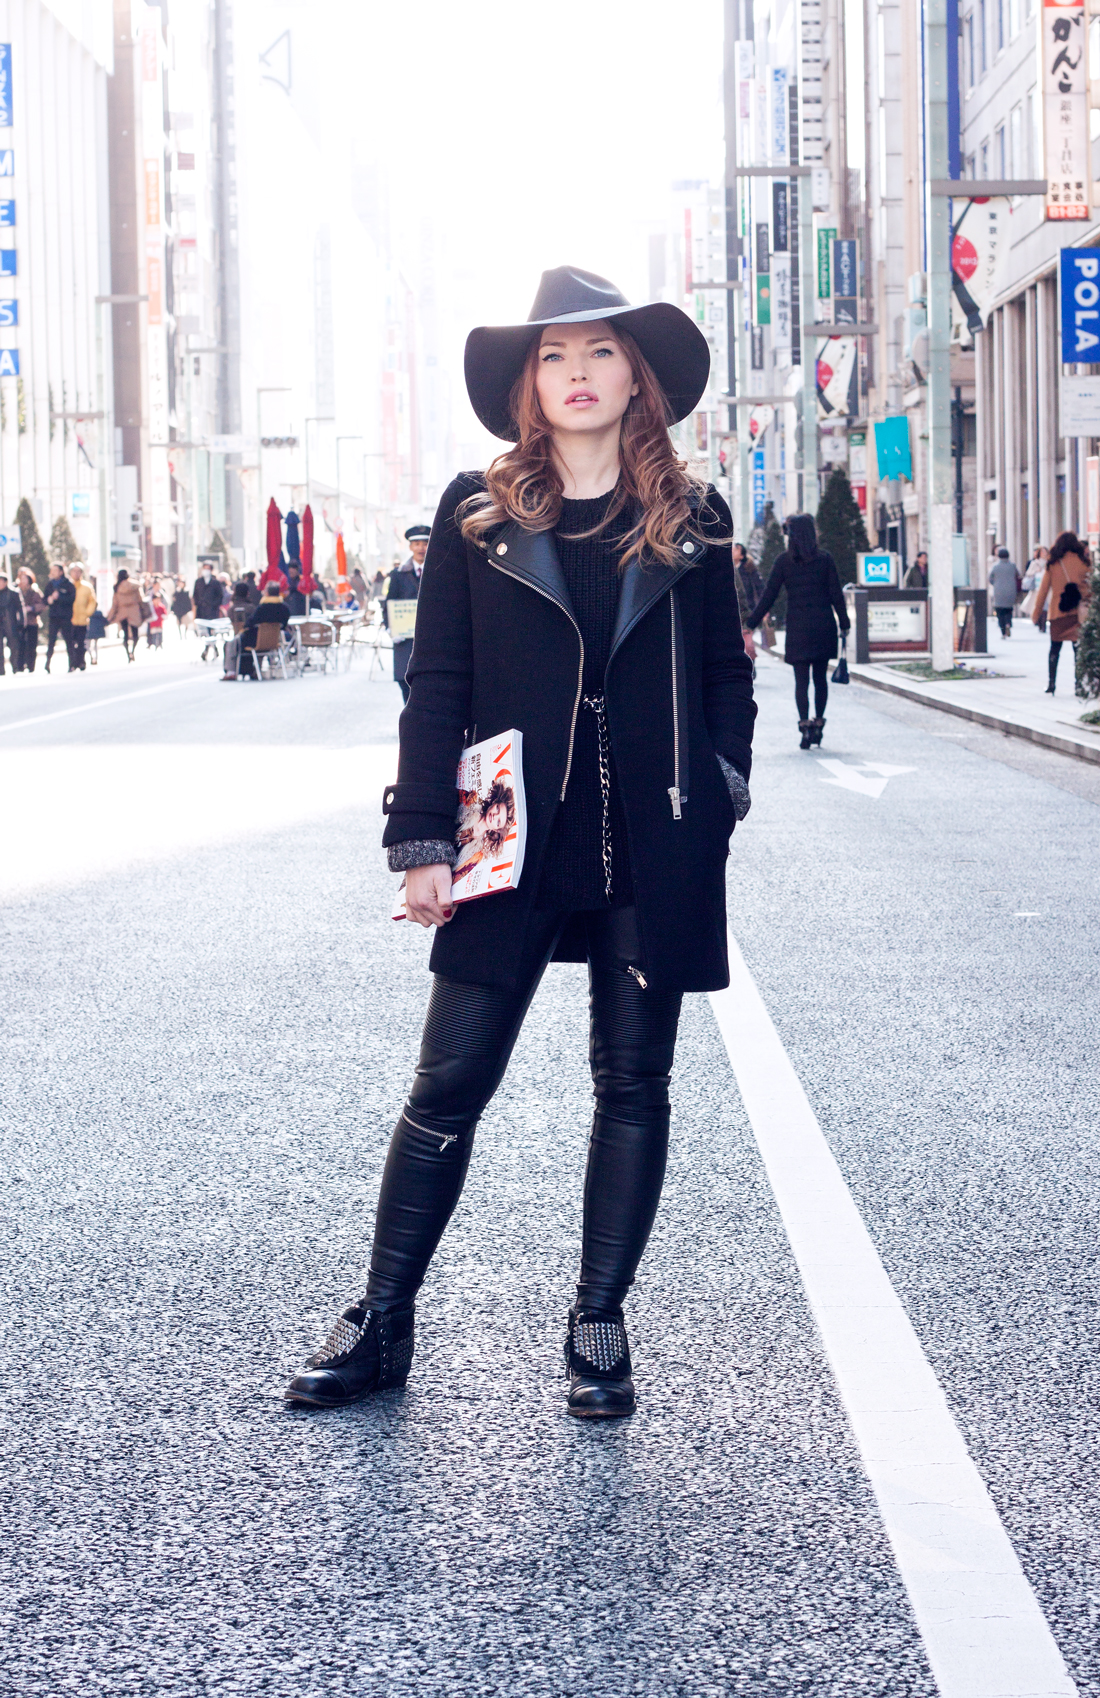 hat, fedora, studded boots,  ginza, chuo dori, japan, tokyofashion, knits, chain belt, vogue magazine